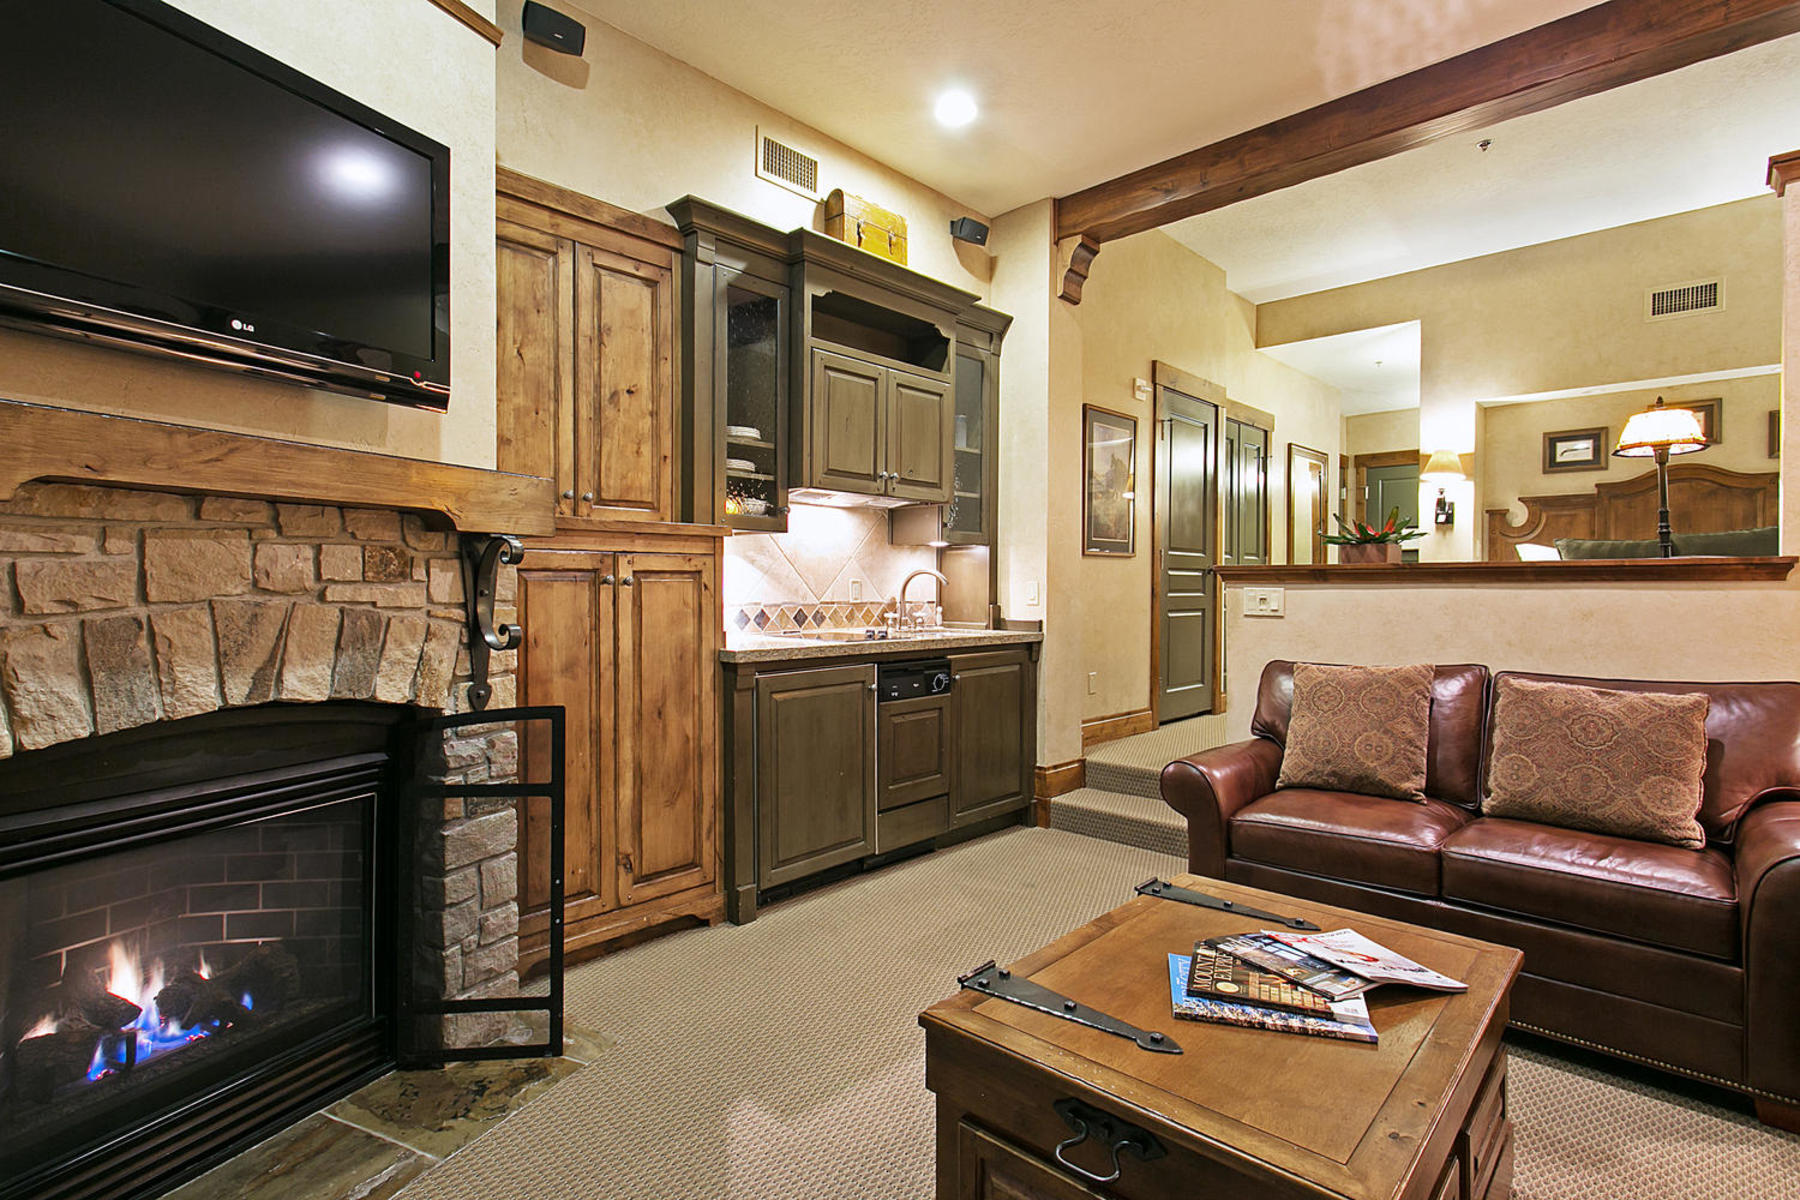 Condominium for Sale at Executive Suite in the Heart of Park City 2001 Park Ave #225 Park City, Utah, 84060 United States